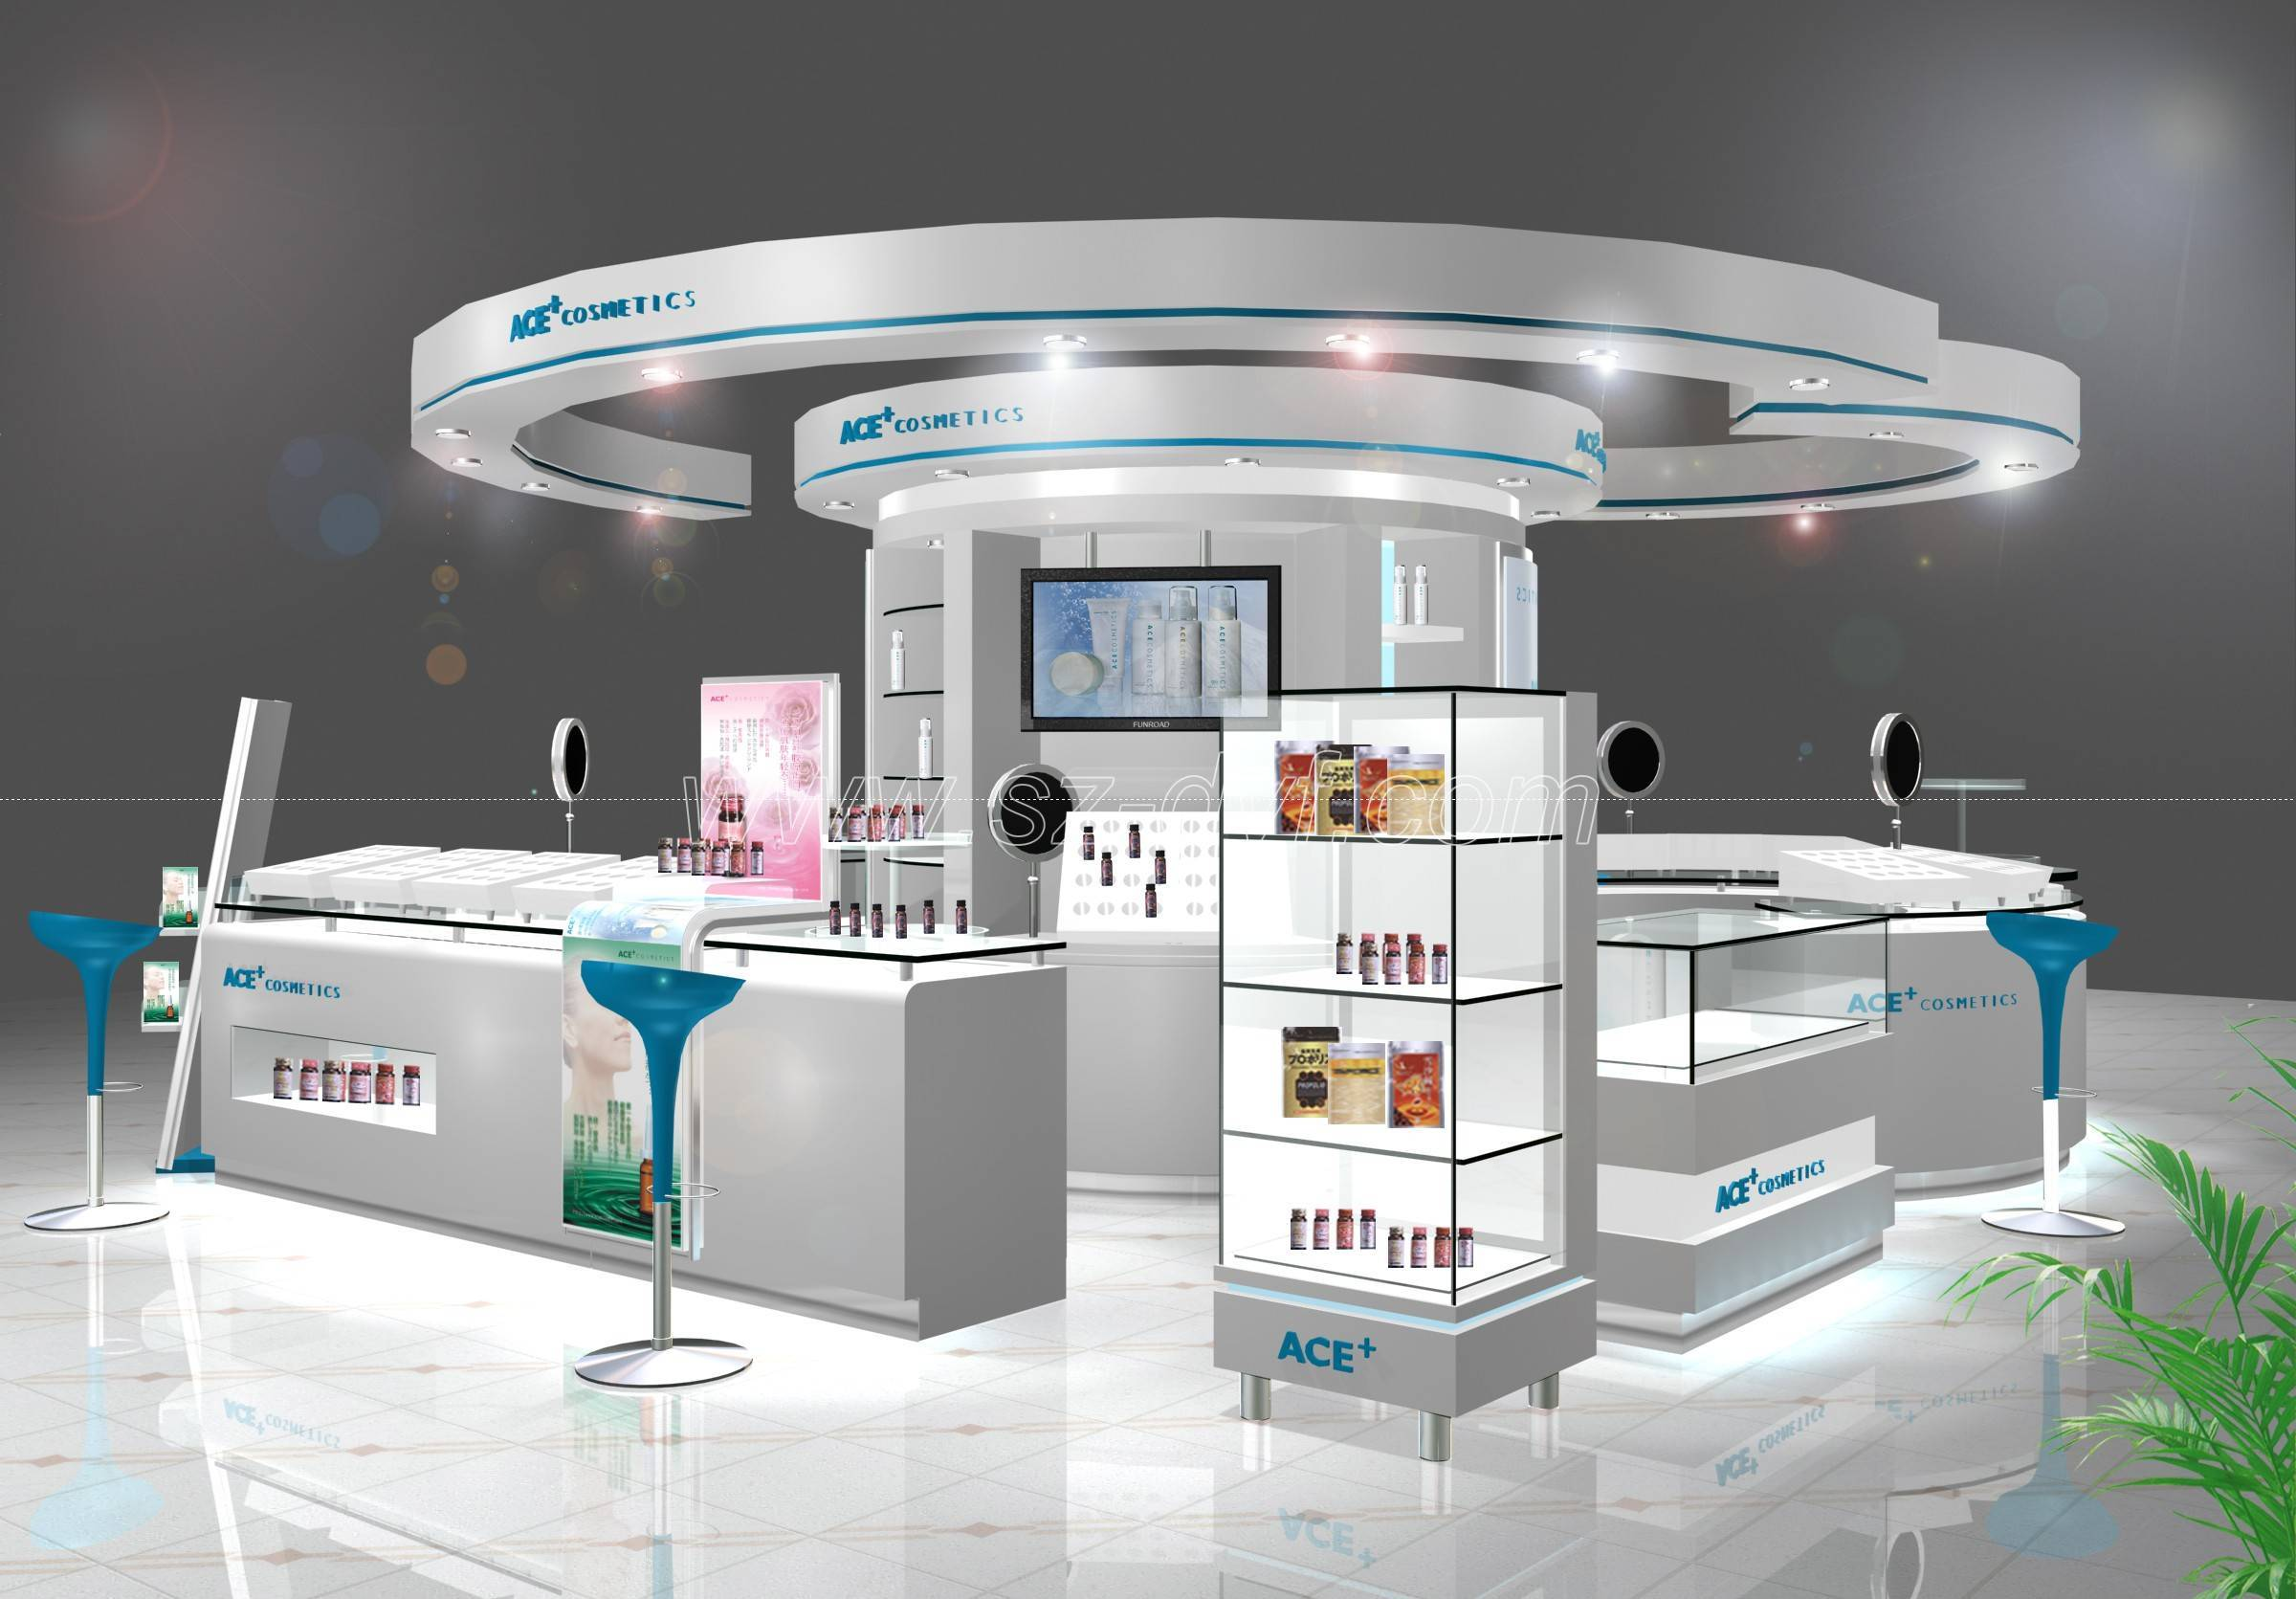 cosmetics display showcase/kiosk/stand - Shenzhen ...